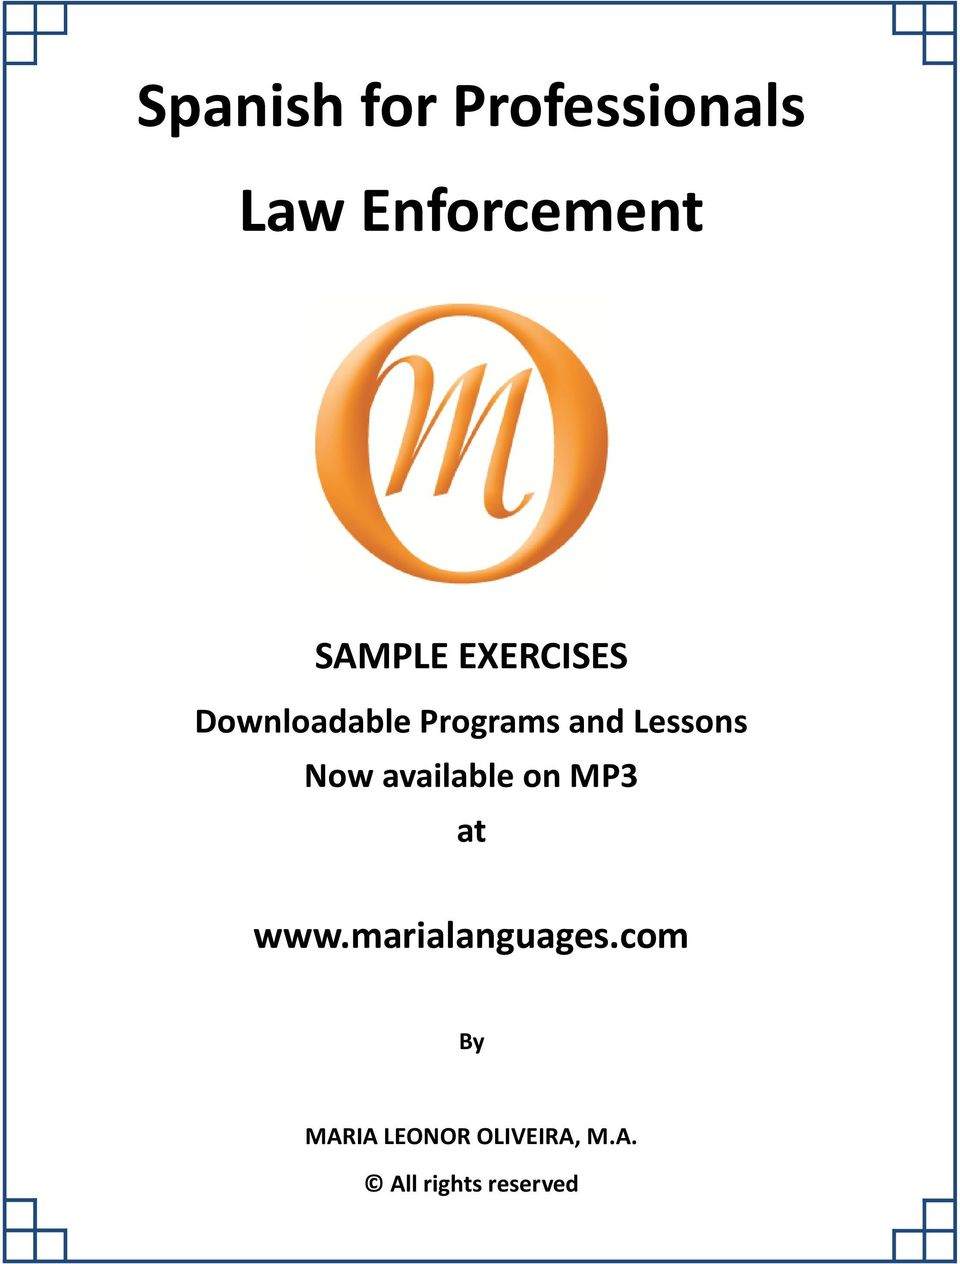 Lessons Now available on MP3 at www.